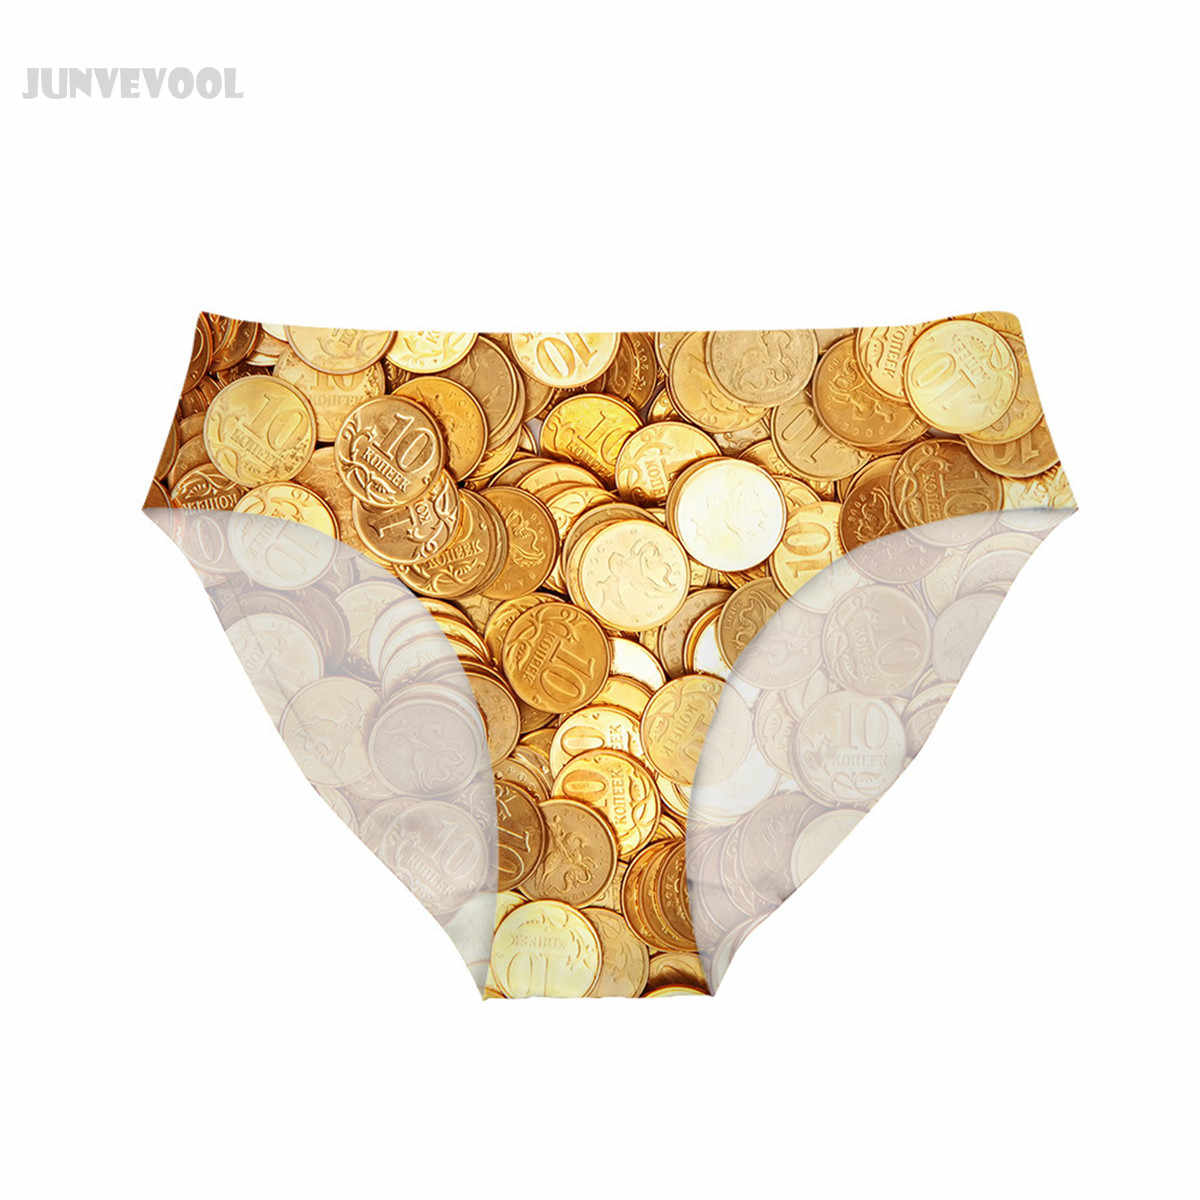 91bd948094 ... Women Sexy Panty Womens Seamless Underwear Money Gold Coin Print  Lingerie Bottom Intimo Mid-rise ...